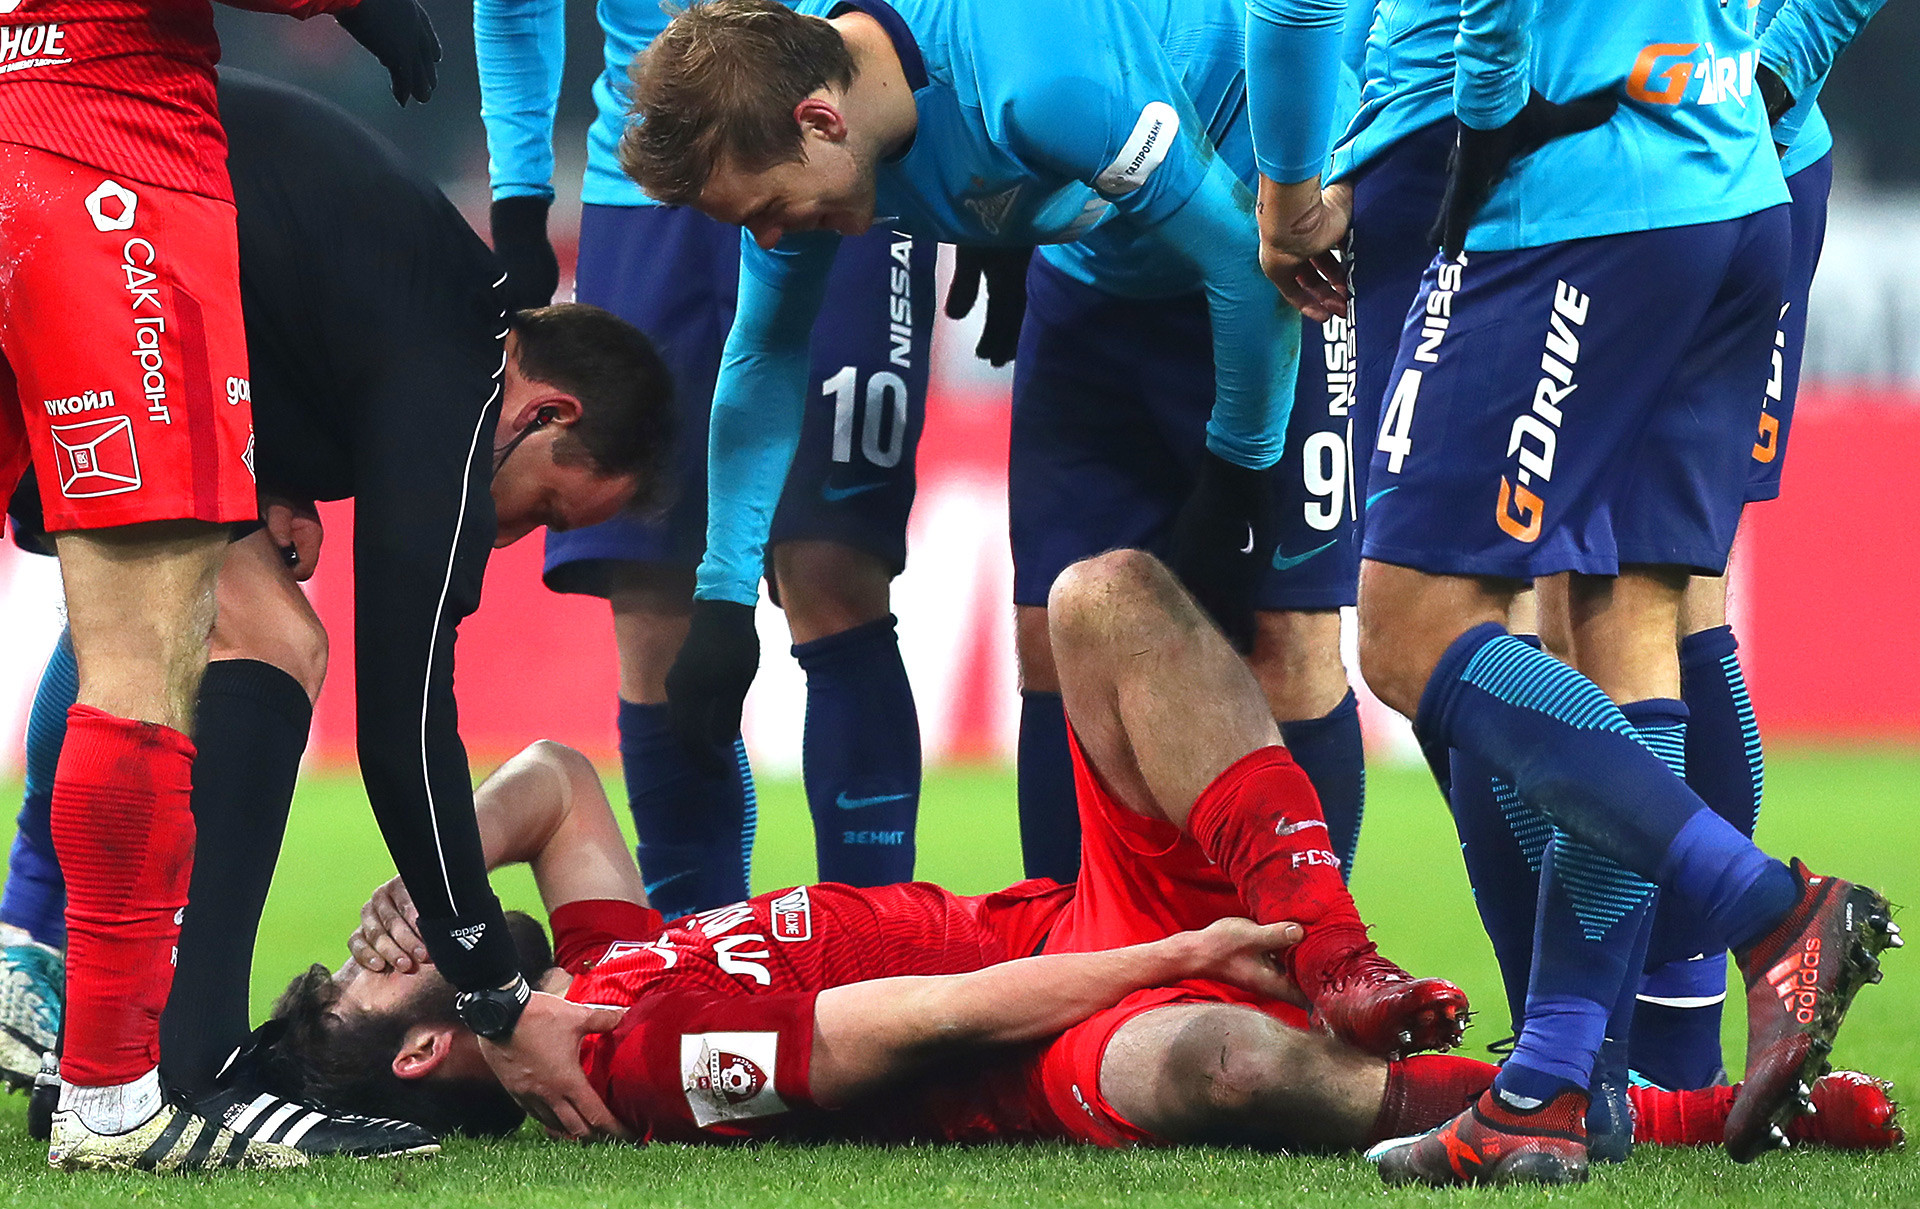 National team hopeful Georgi Dzhikiya is likely to miss out on World Cup action following a cruciate ligament injury in January